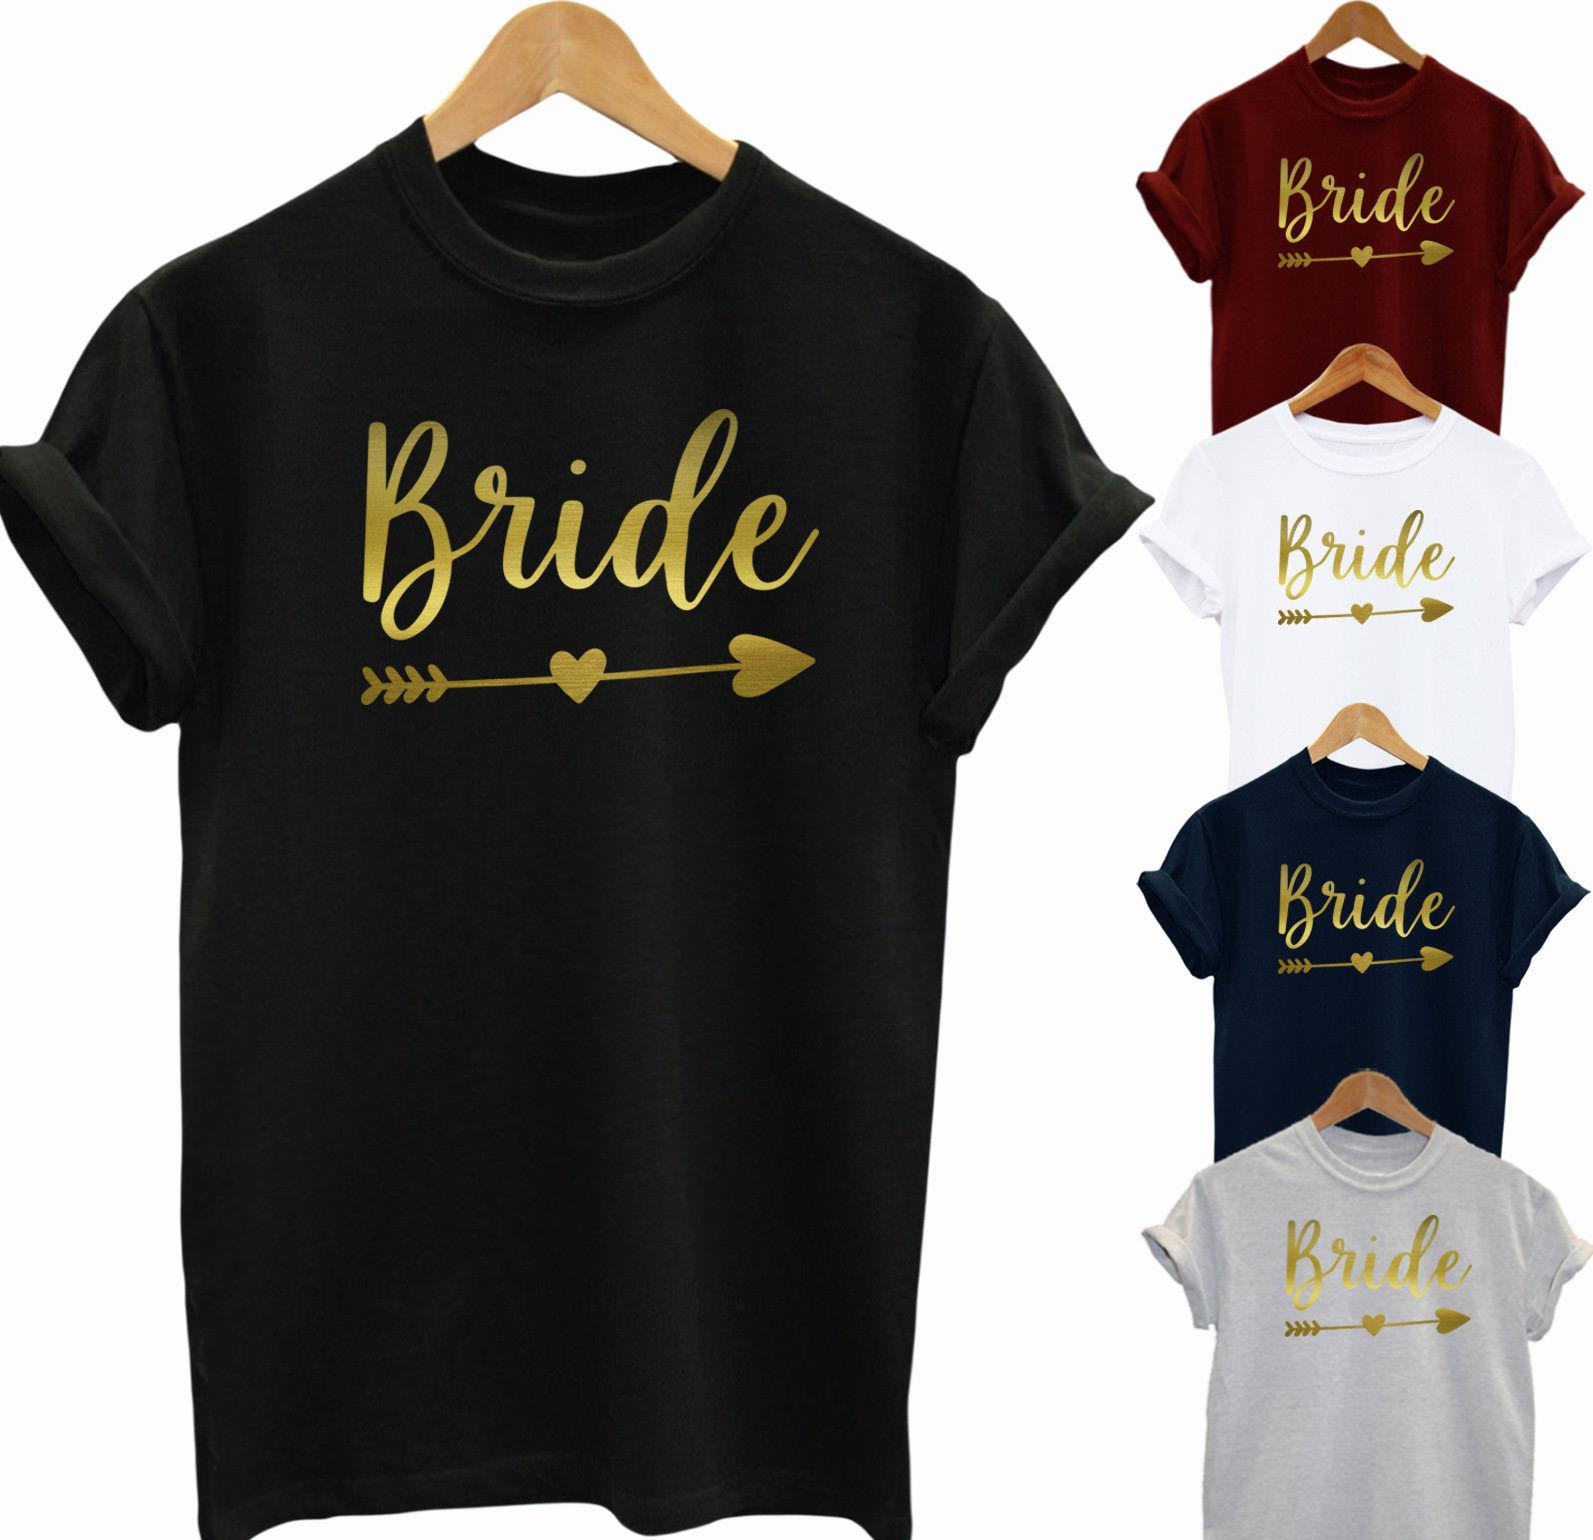 Ladies hen party t-shirts tops Bride Bridesmaid Mother of the bride red